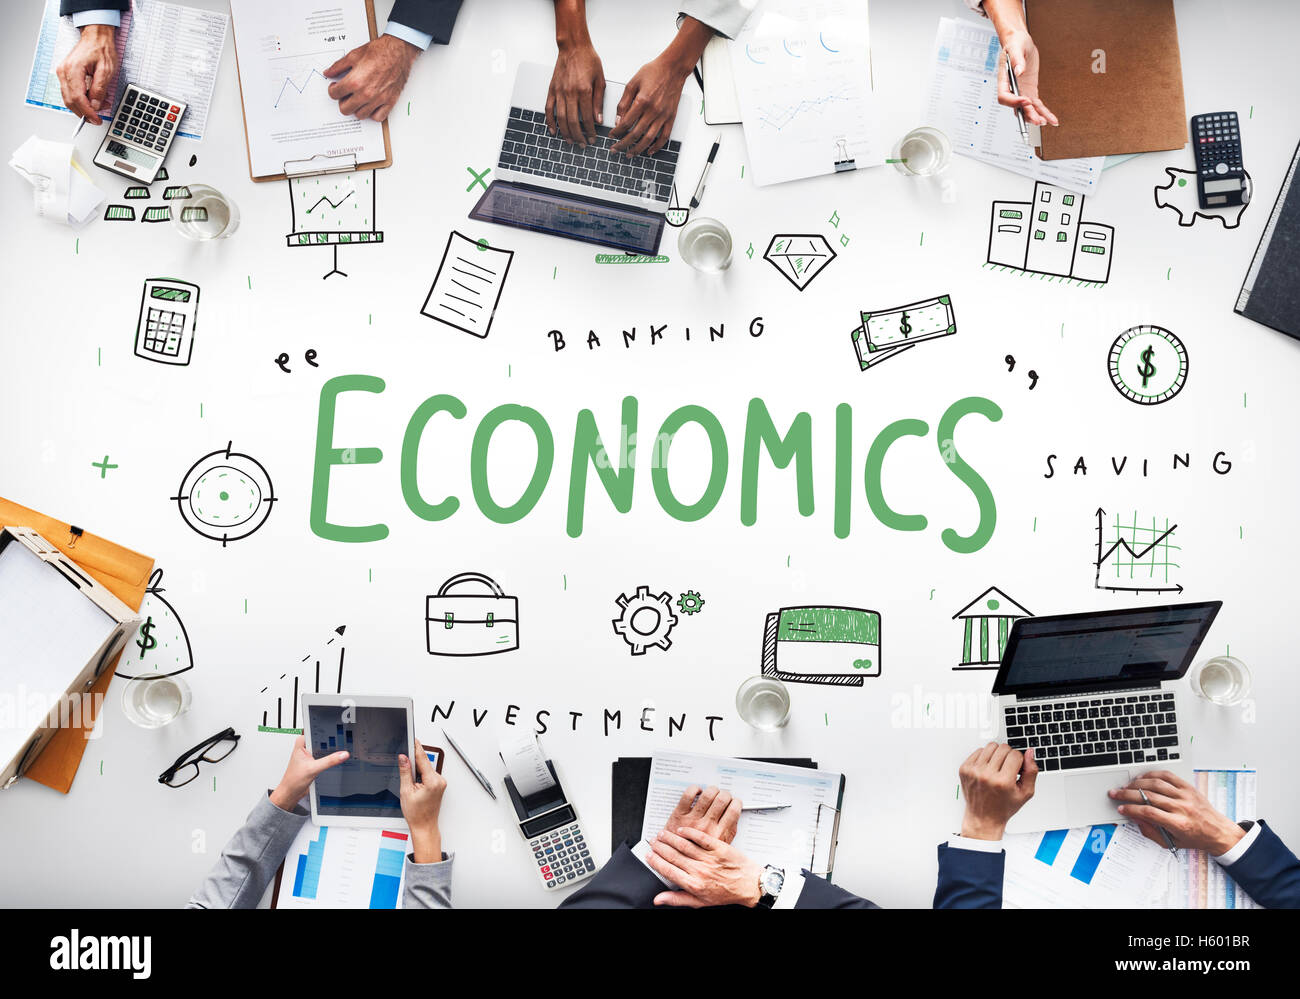 Economics Financial Business Banking Investment Concept - Stock Image